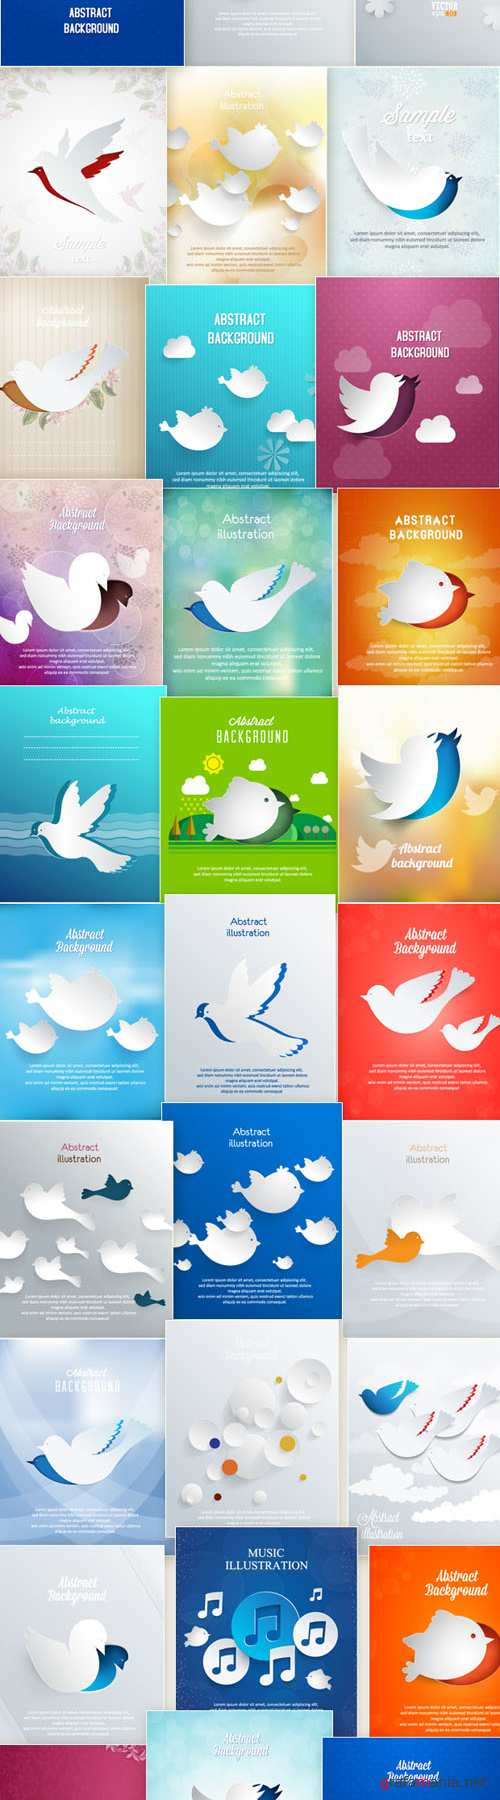 50 Abstract 3D Vector Illustrations